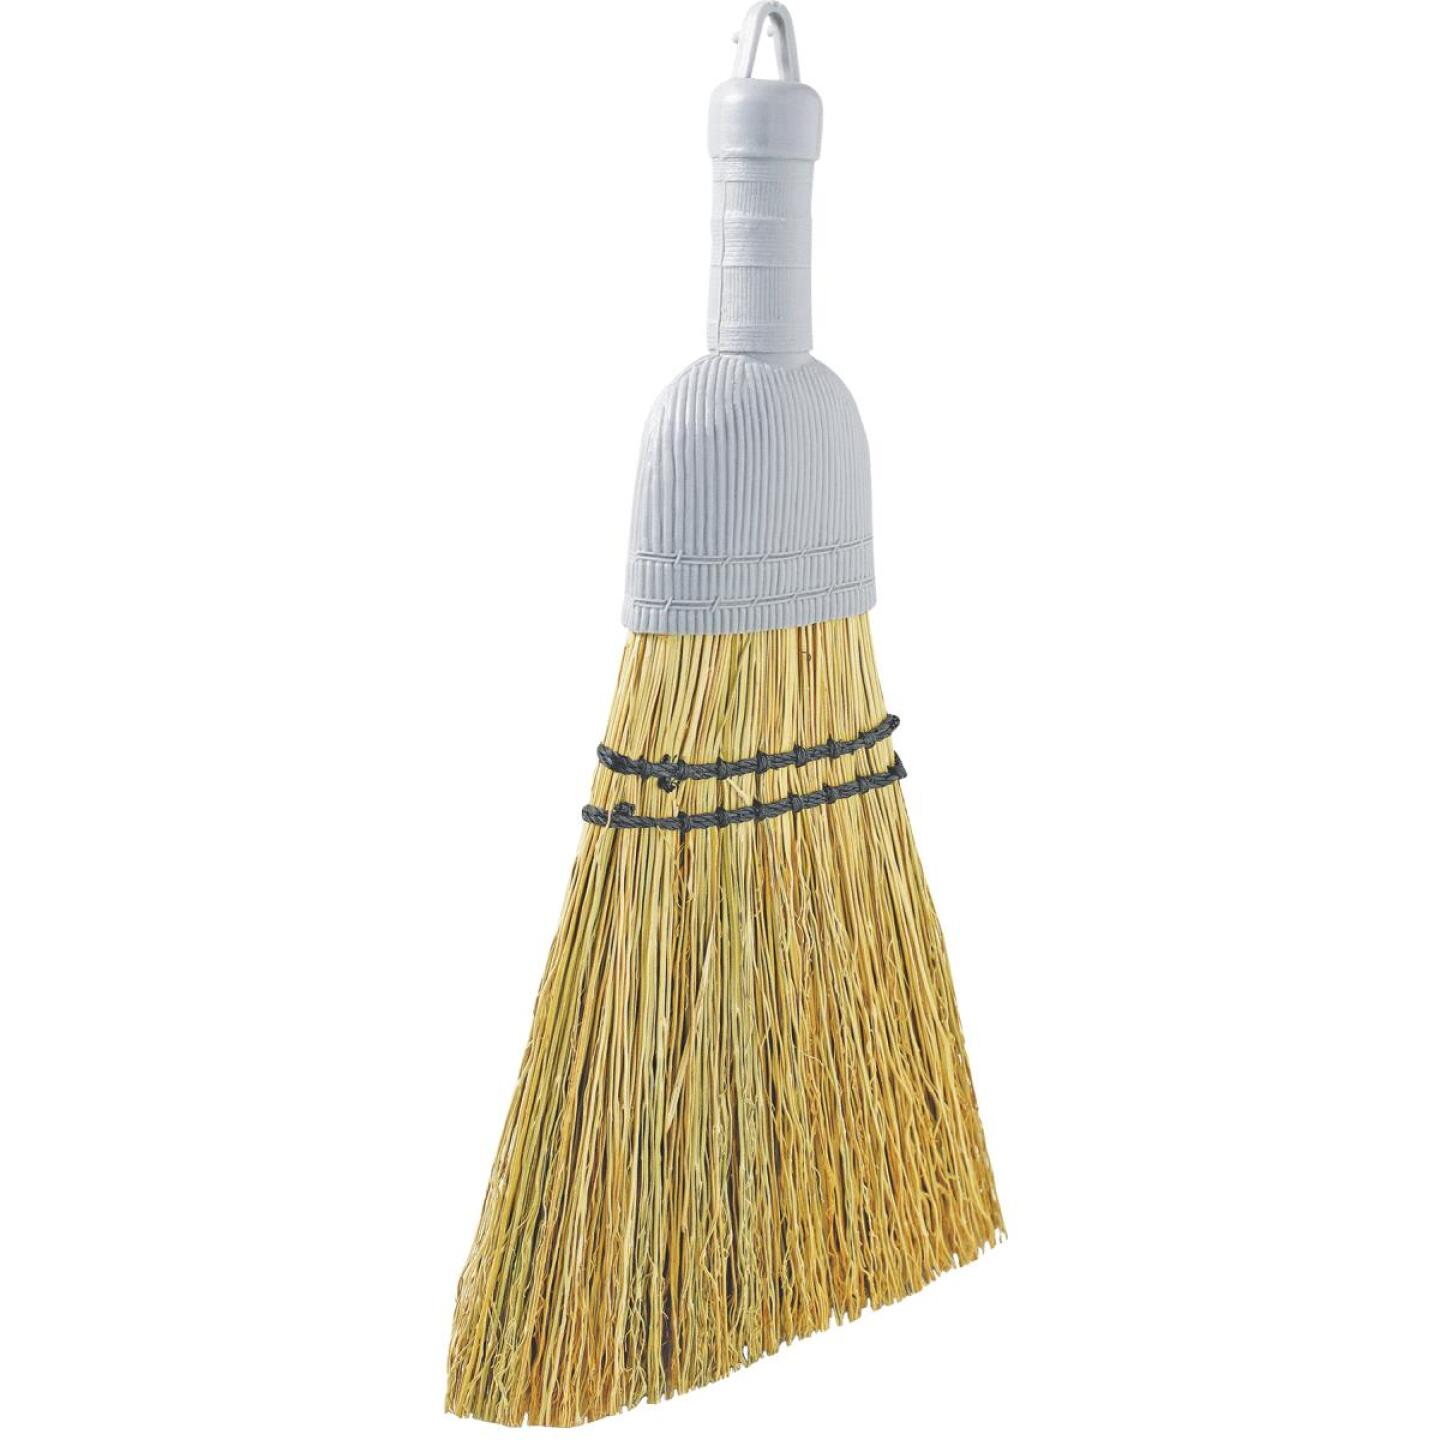 Do it 7 In. Natural Whisk Broom Image 1